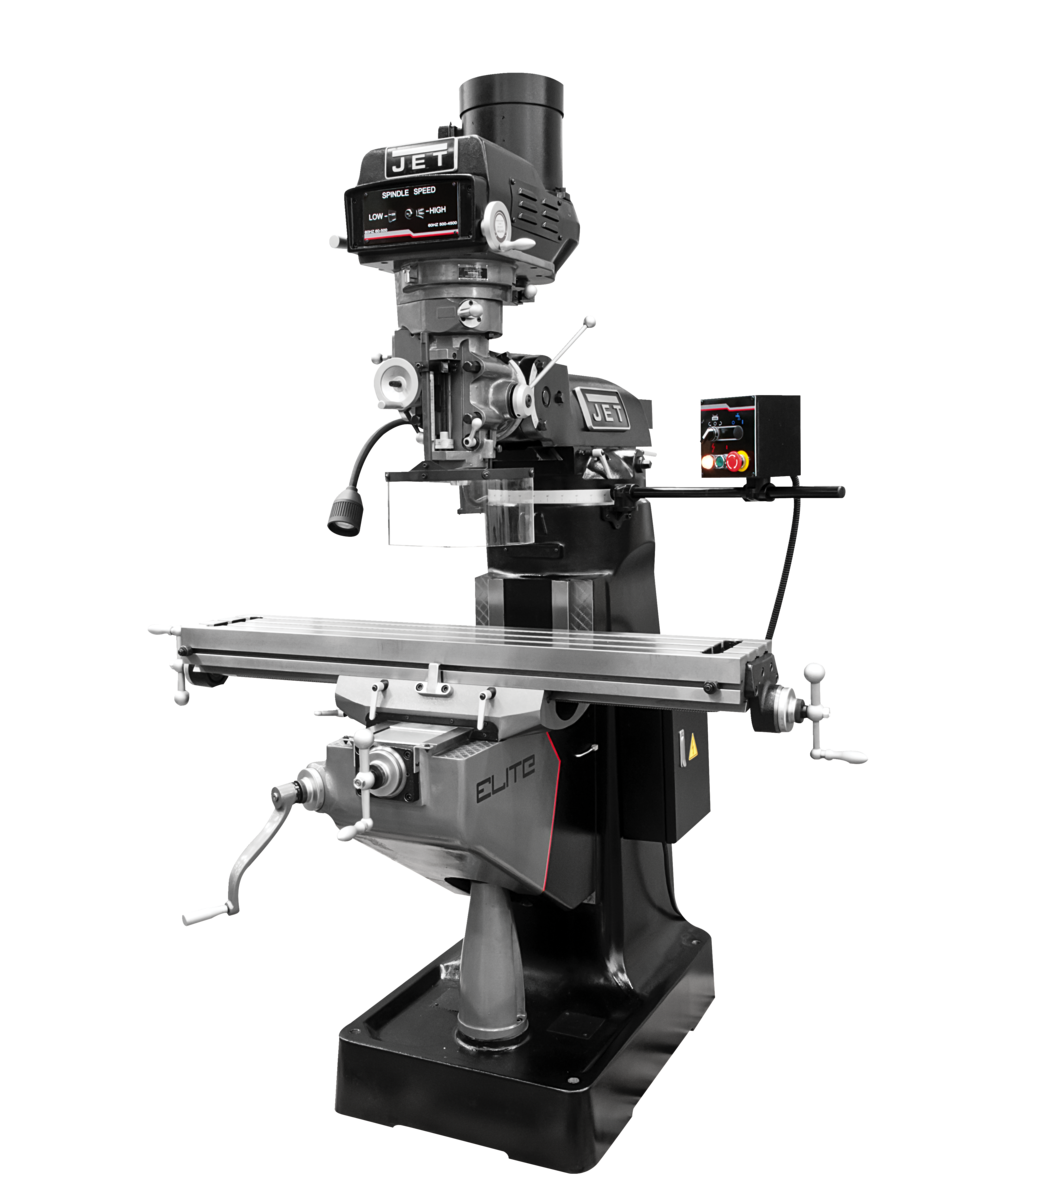 ETM-949 Mill with 2-Axis Newall DP700 DRO and Servo X, Y, Z-Axis Powerfeeds